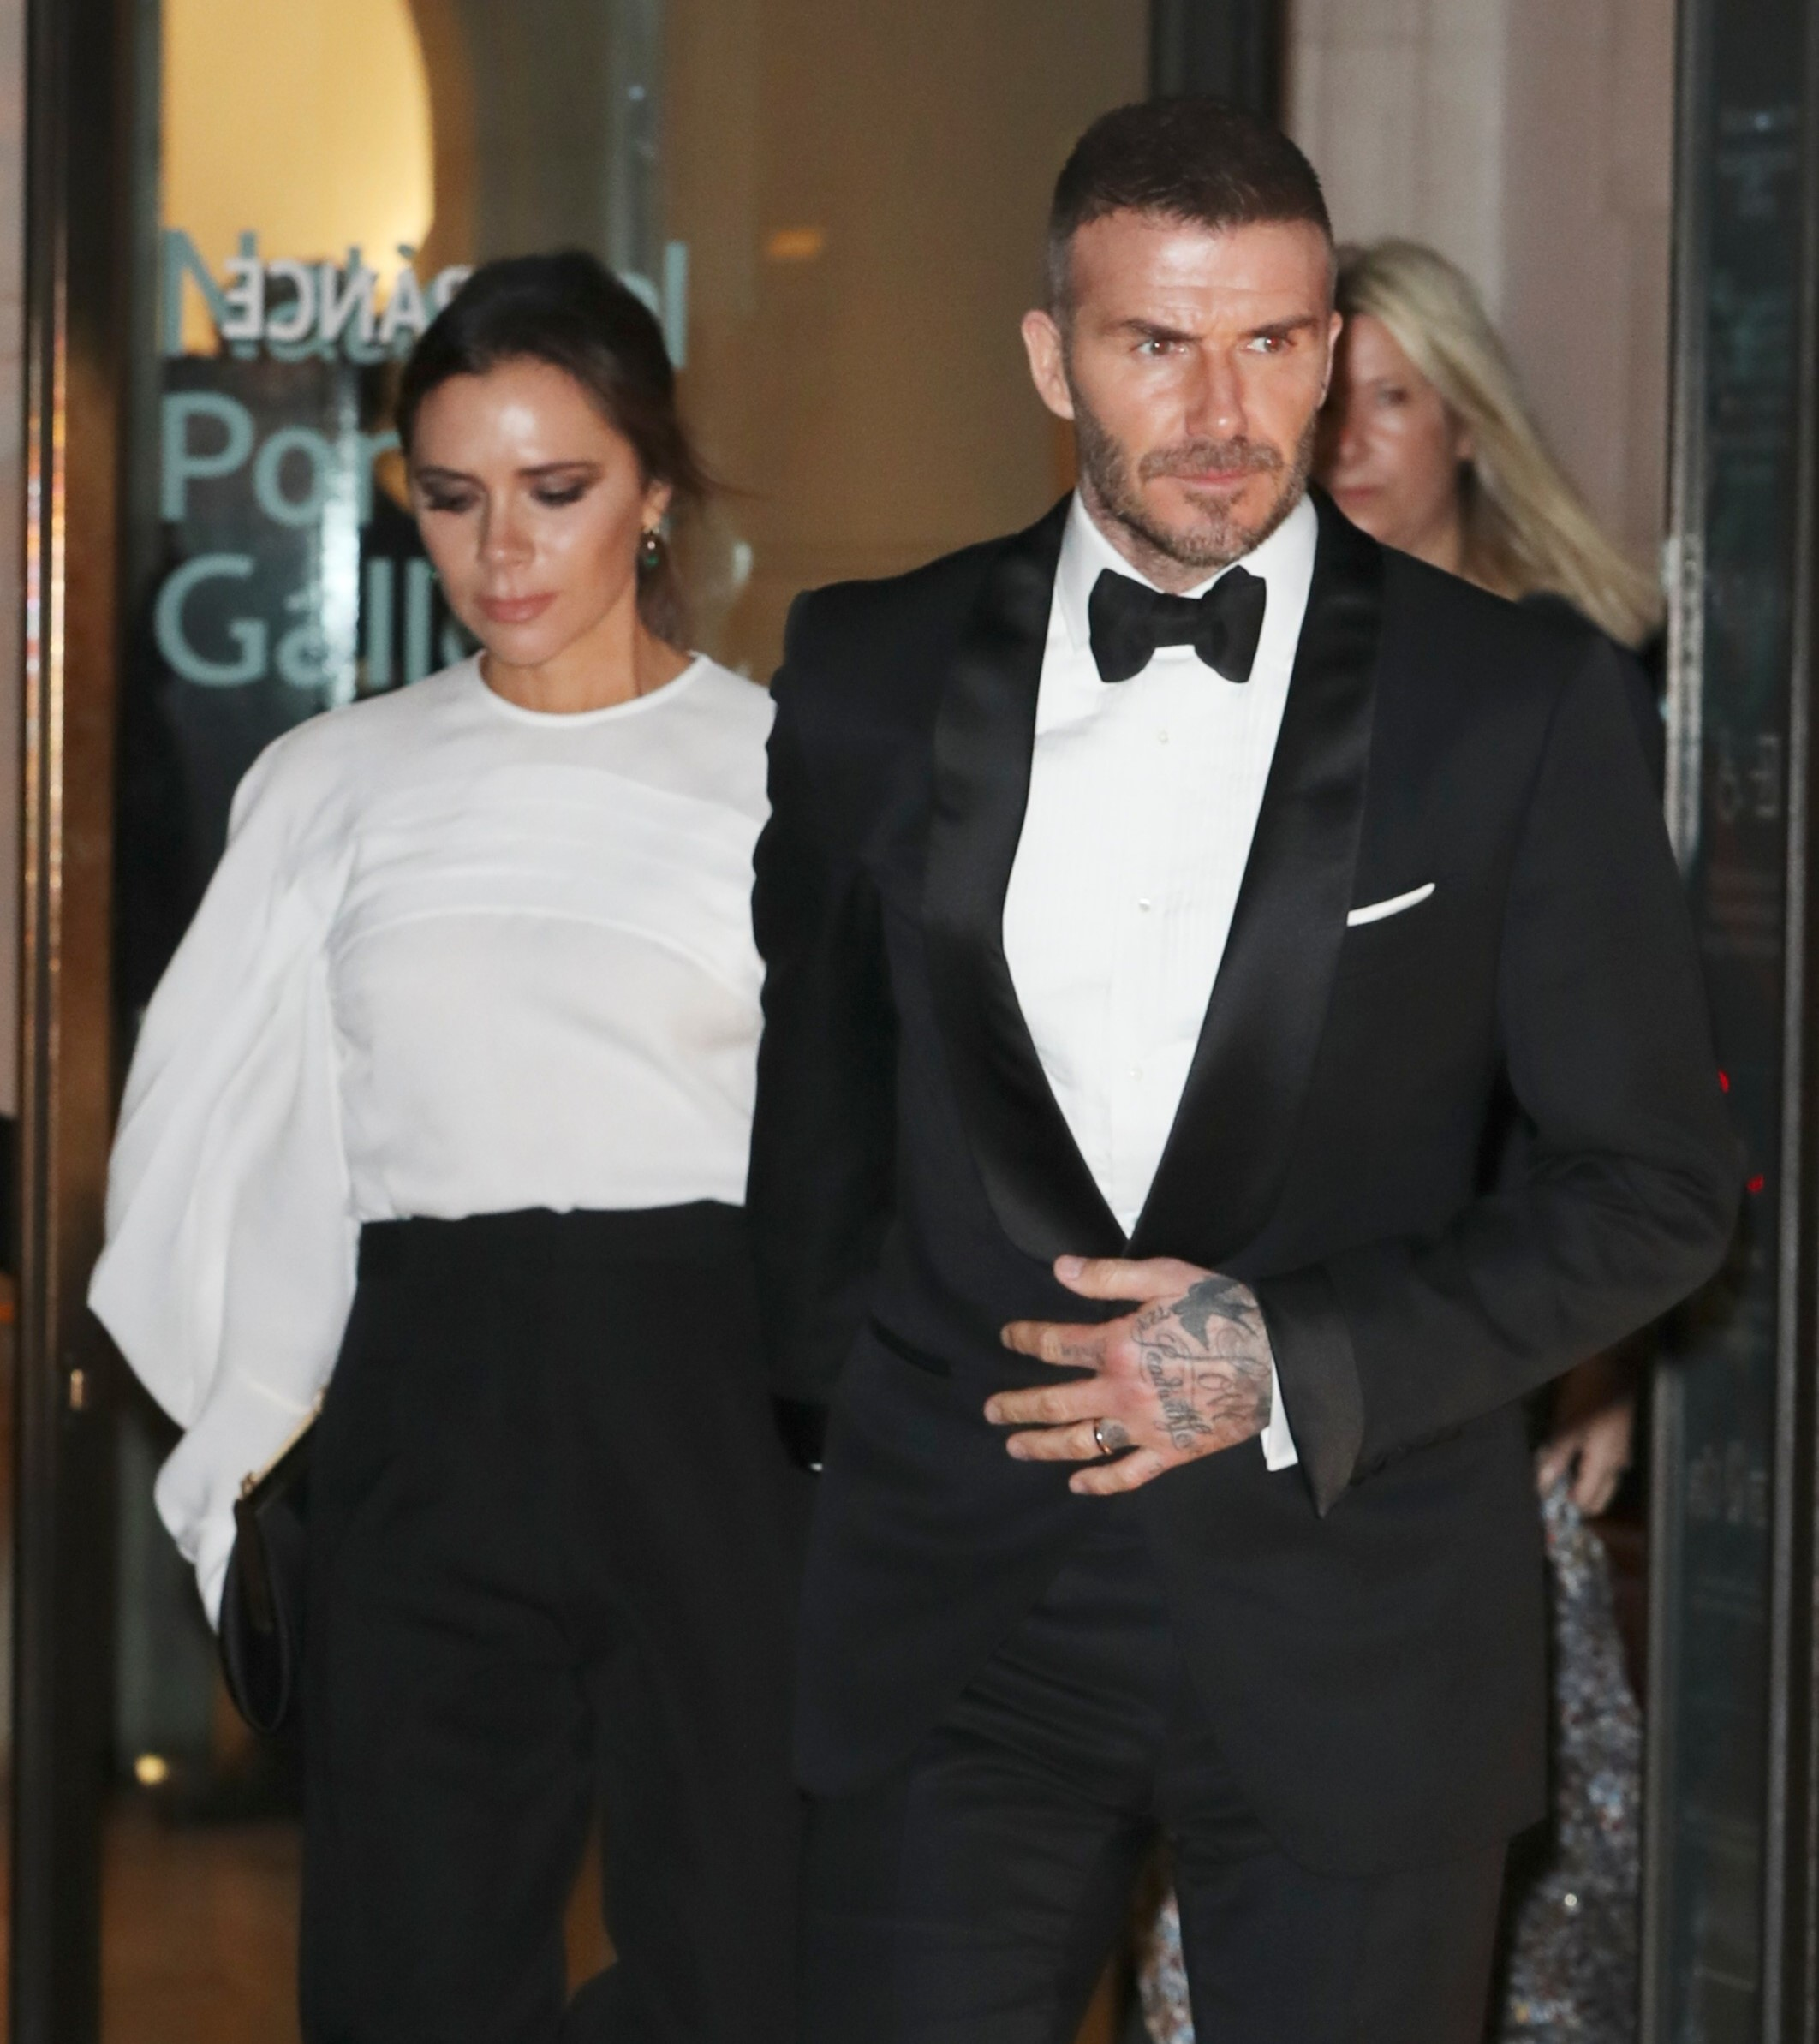 David and Victoria Beckham leaving the Portrait Gala at the National Portrait Gallery, London Pictured: Victoria Beckham,David Beckham Ref: SPL5071919 130319 NON-EXCLUSIVE Picture by: SplashNews.com Splash News and Pictures Los Angeles: 310-821-2666 New York: 212-619-2666 London: 0207 644 7656 Milan: 02 4399 8577 photodesk@splashnews.com World Rights